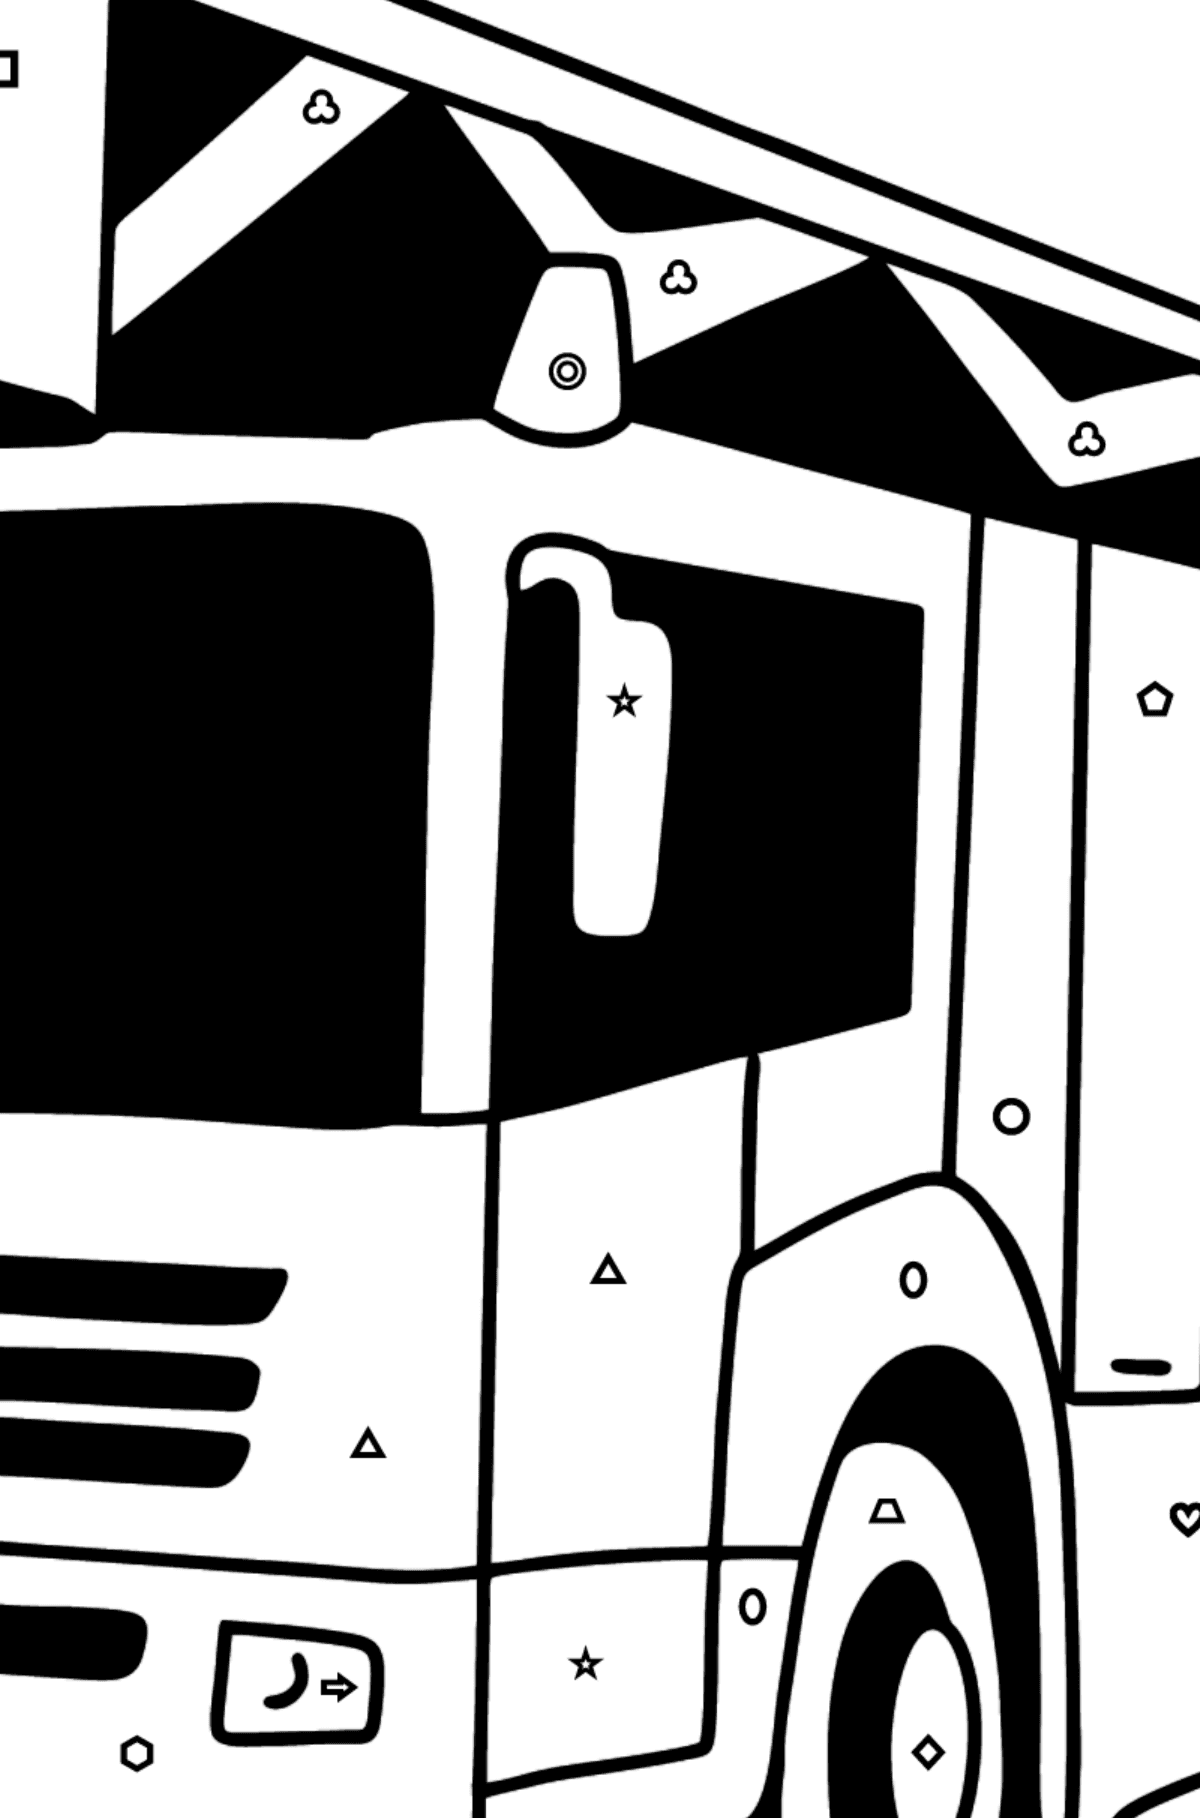 Fire Truck in Germany coloring page - Coloring by Geometric Shapes for Kids